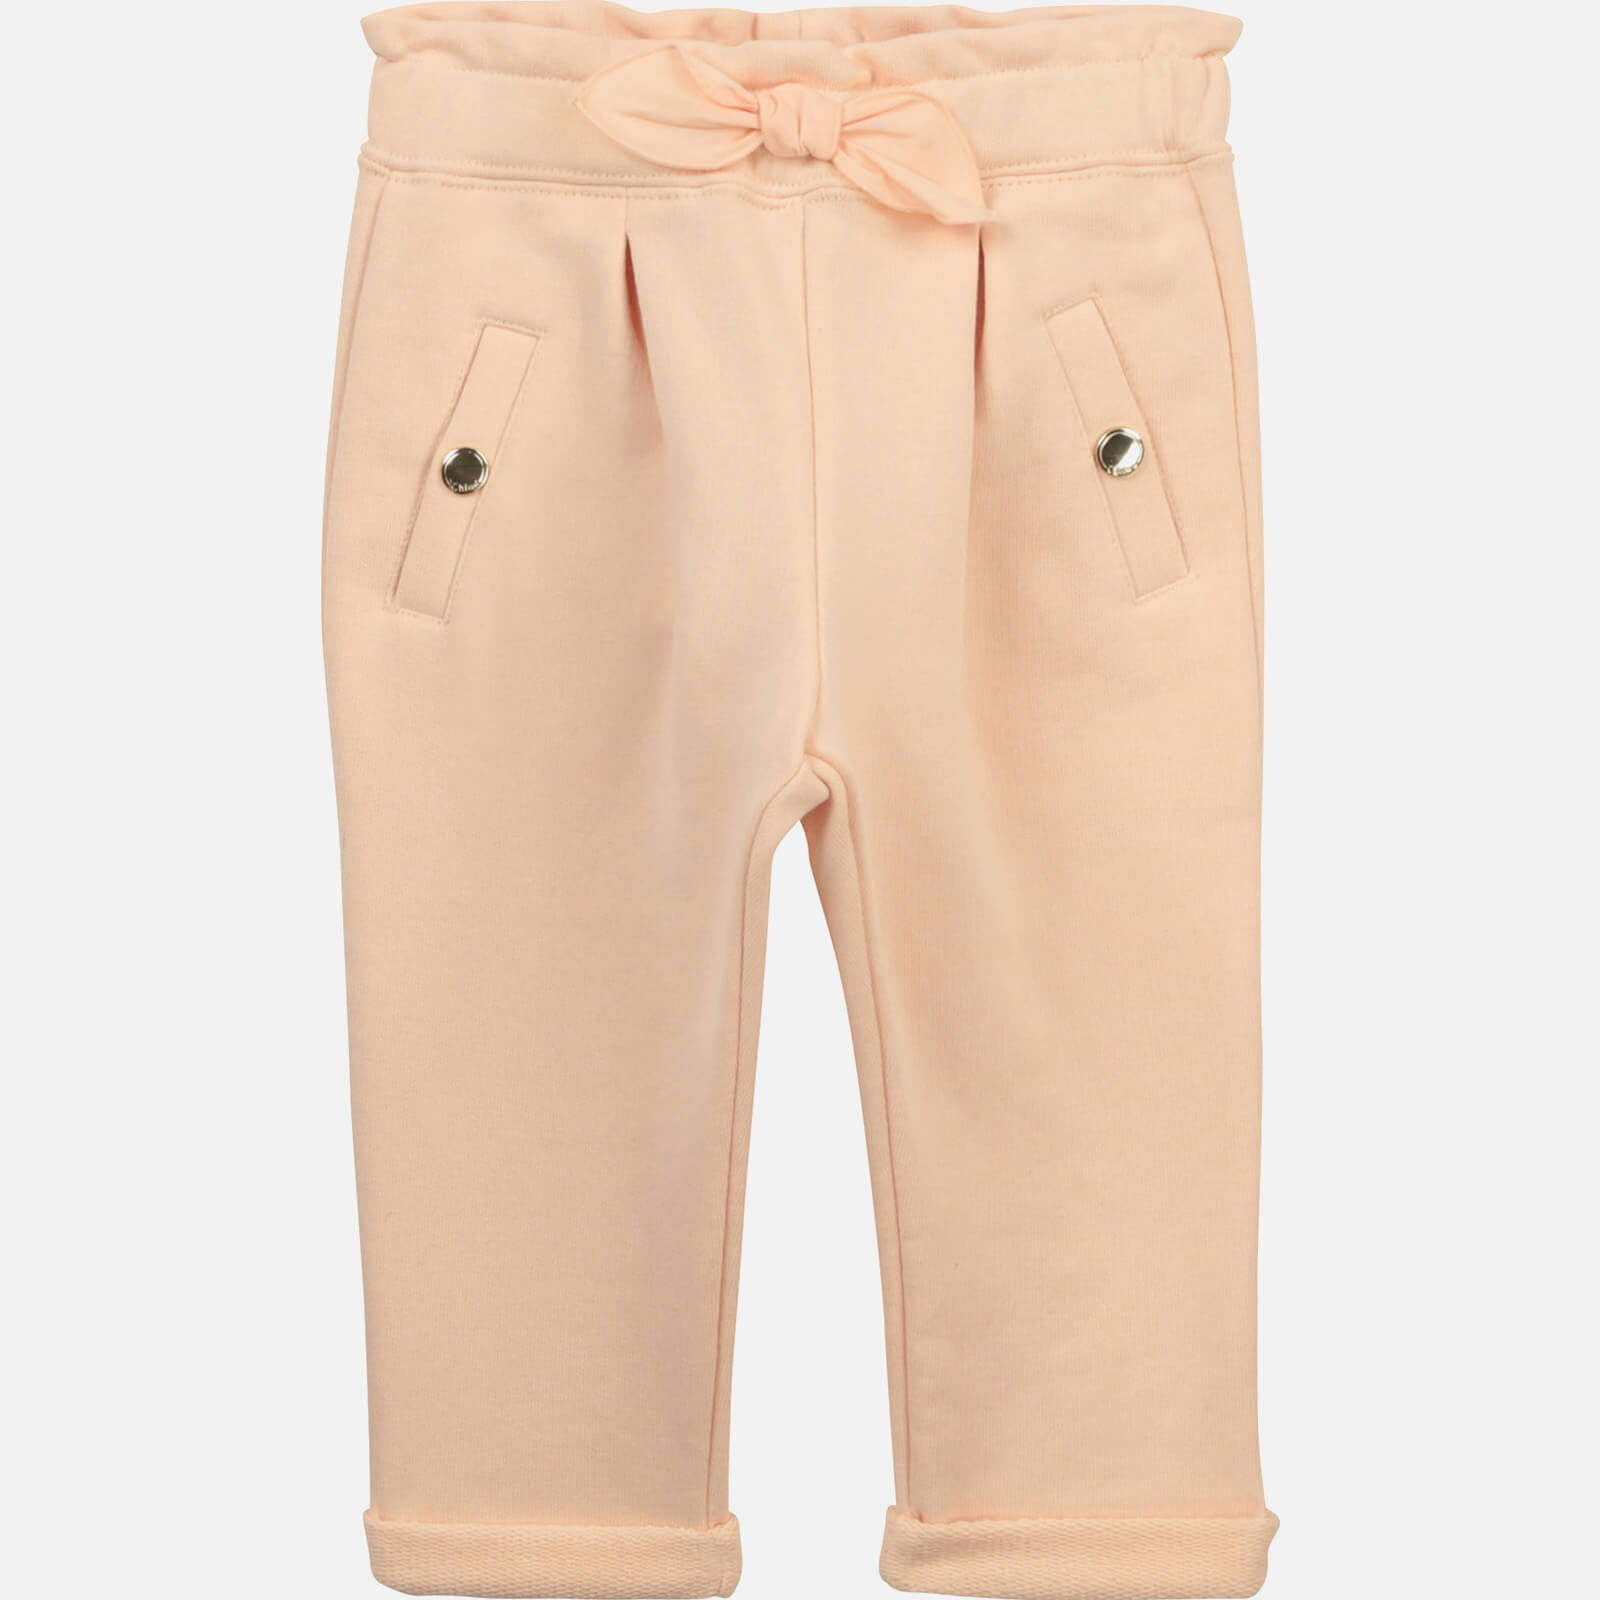 Chloe Girls' Toddlers Trousers - Pale Pink - 9-12 months